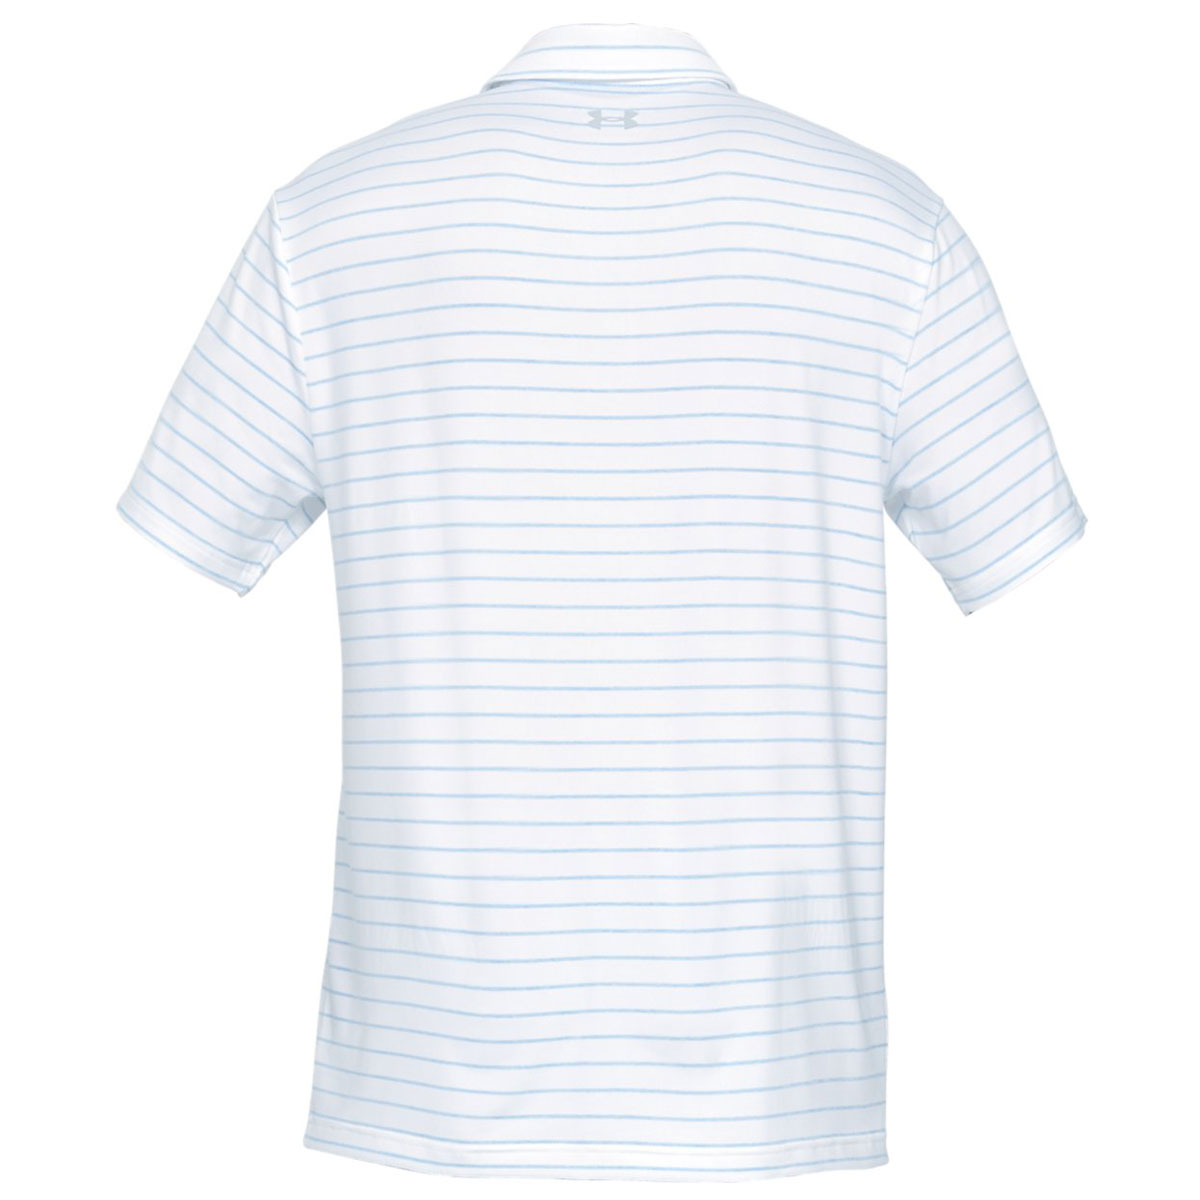 Under-Armour-Mens-2019-Playoff-Polo-2-0-Breathable-Light-Stretch-Polo-Shirt thumbnail 135